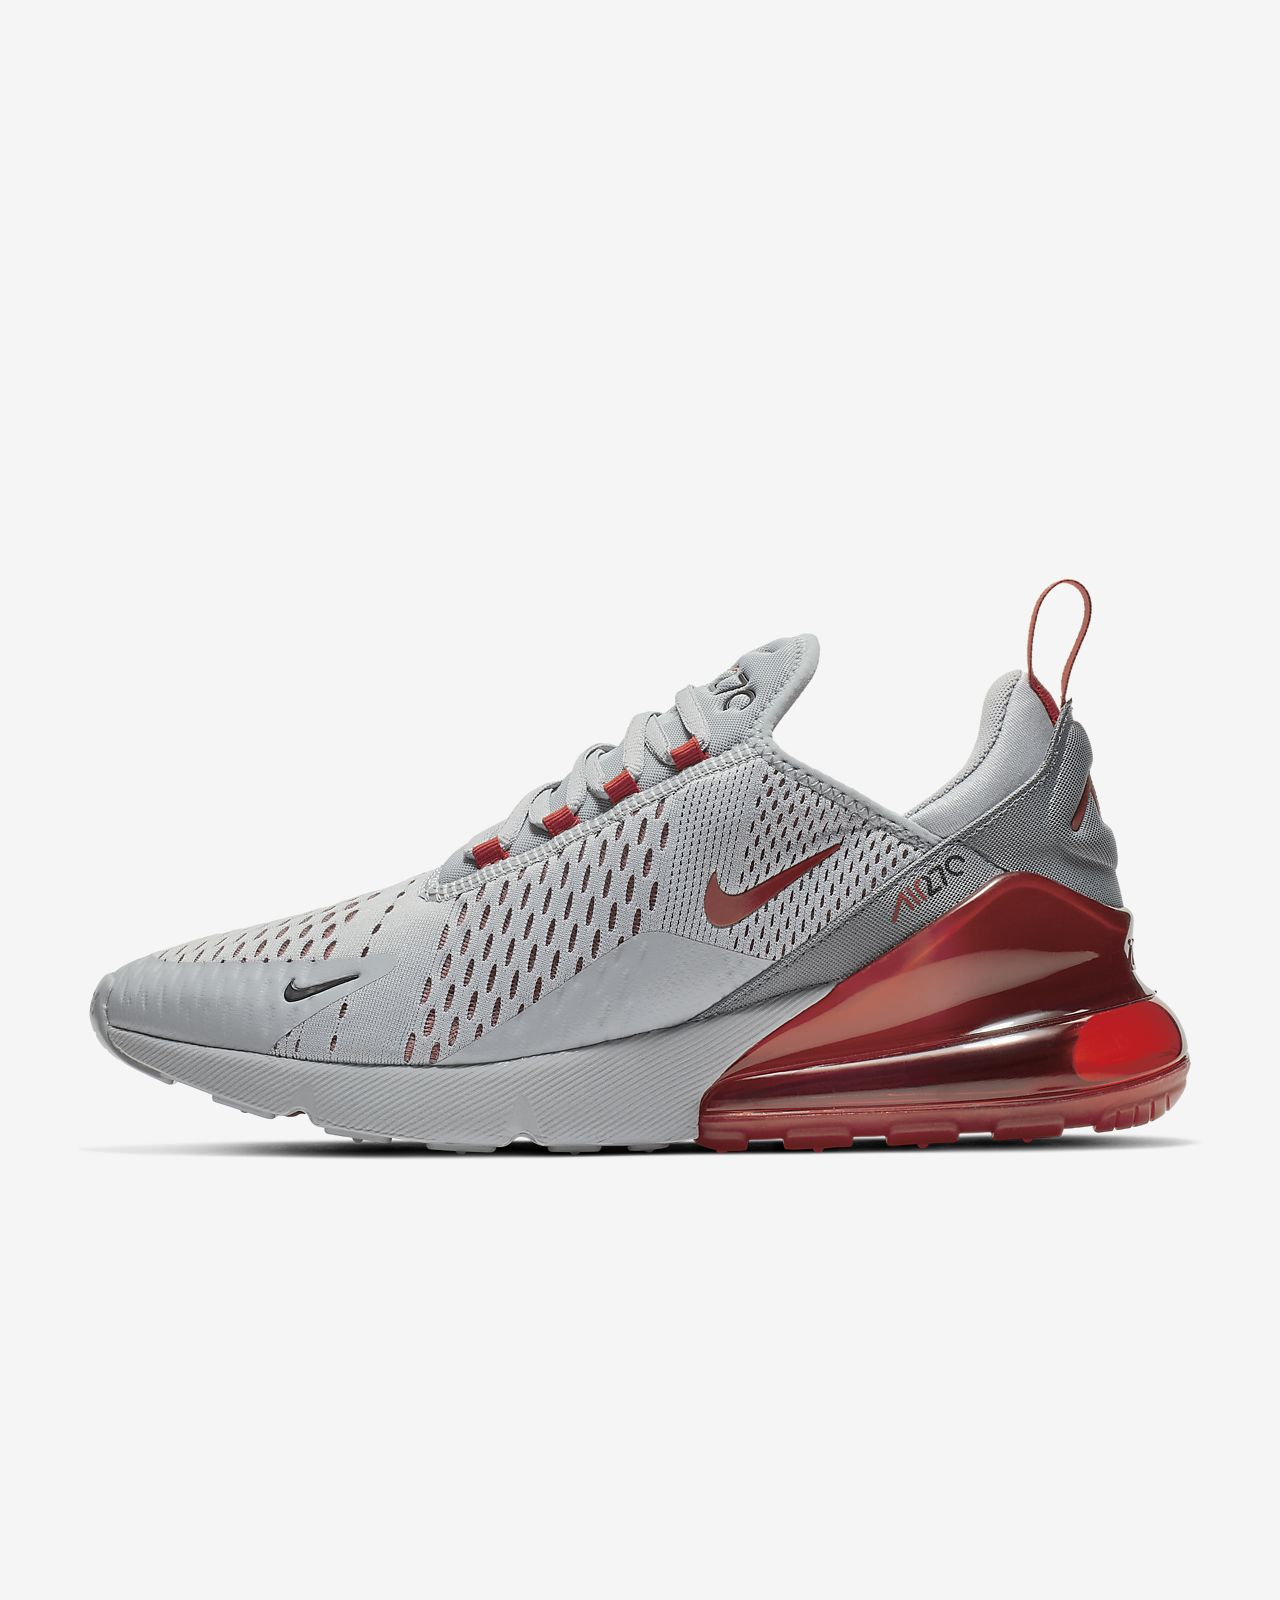 cheaper f8542 16dff Nike Air Max 270